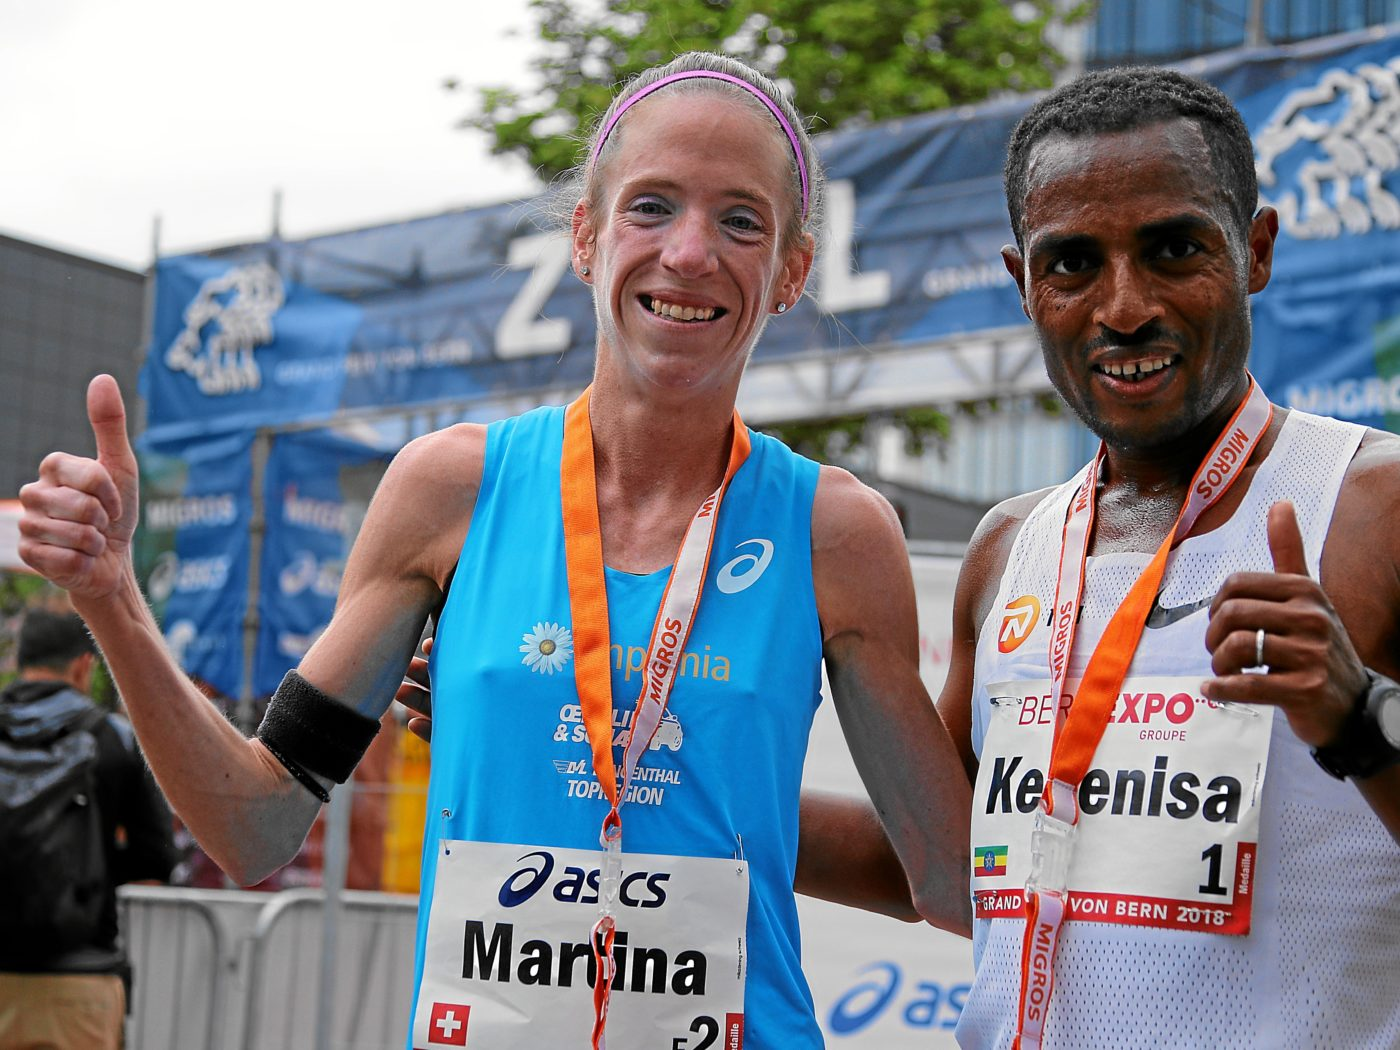 Martina Strähl, Kenenisa Bekele am GP Bern 2018 (Photo: swiss-image.ch)